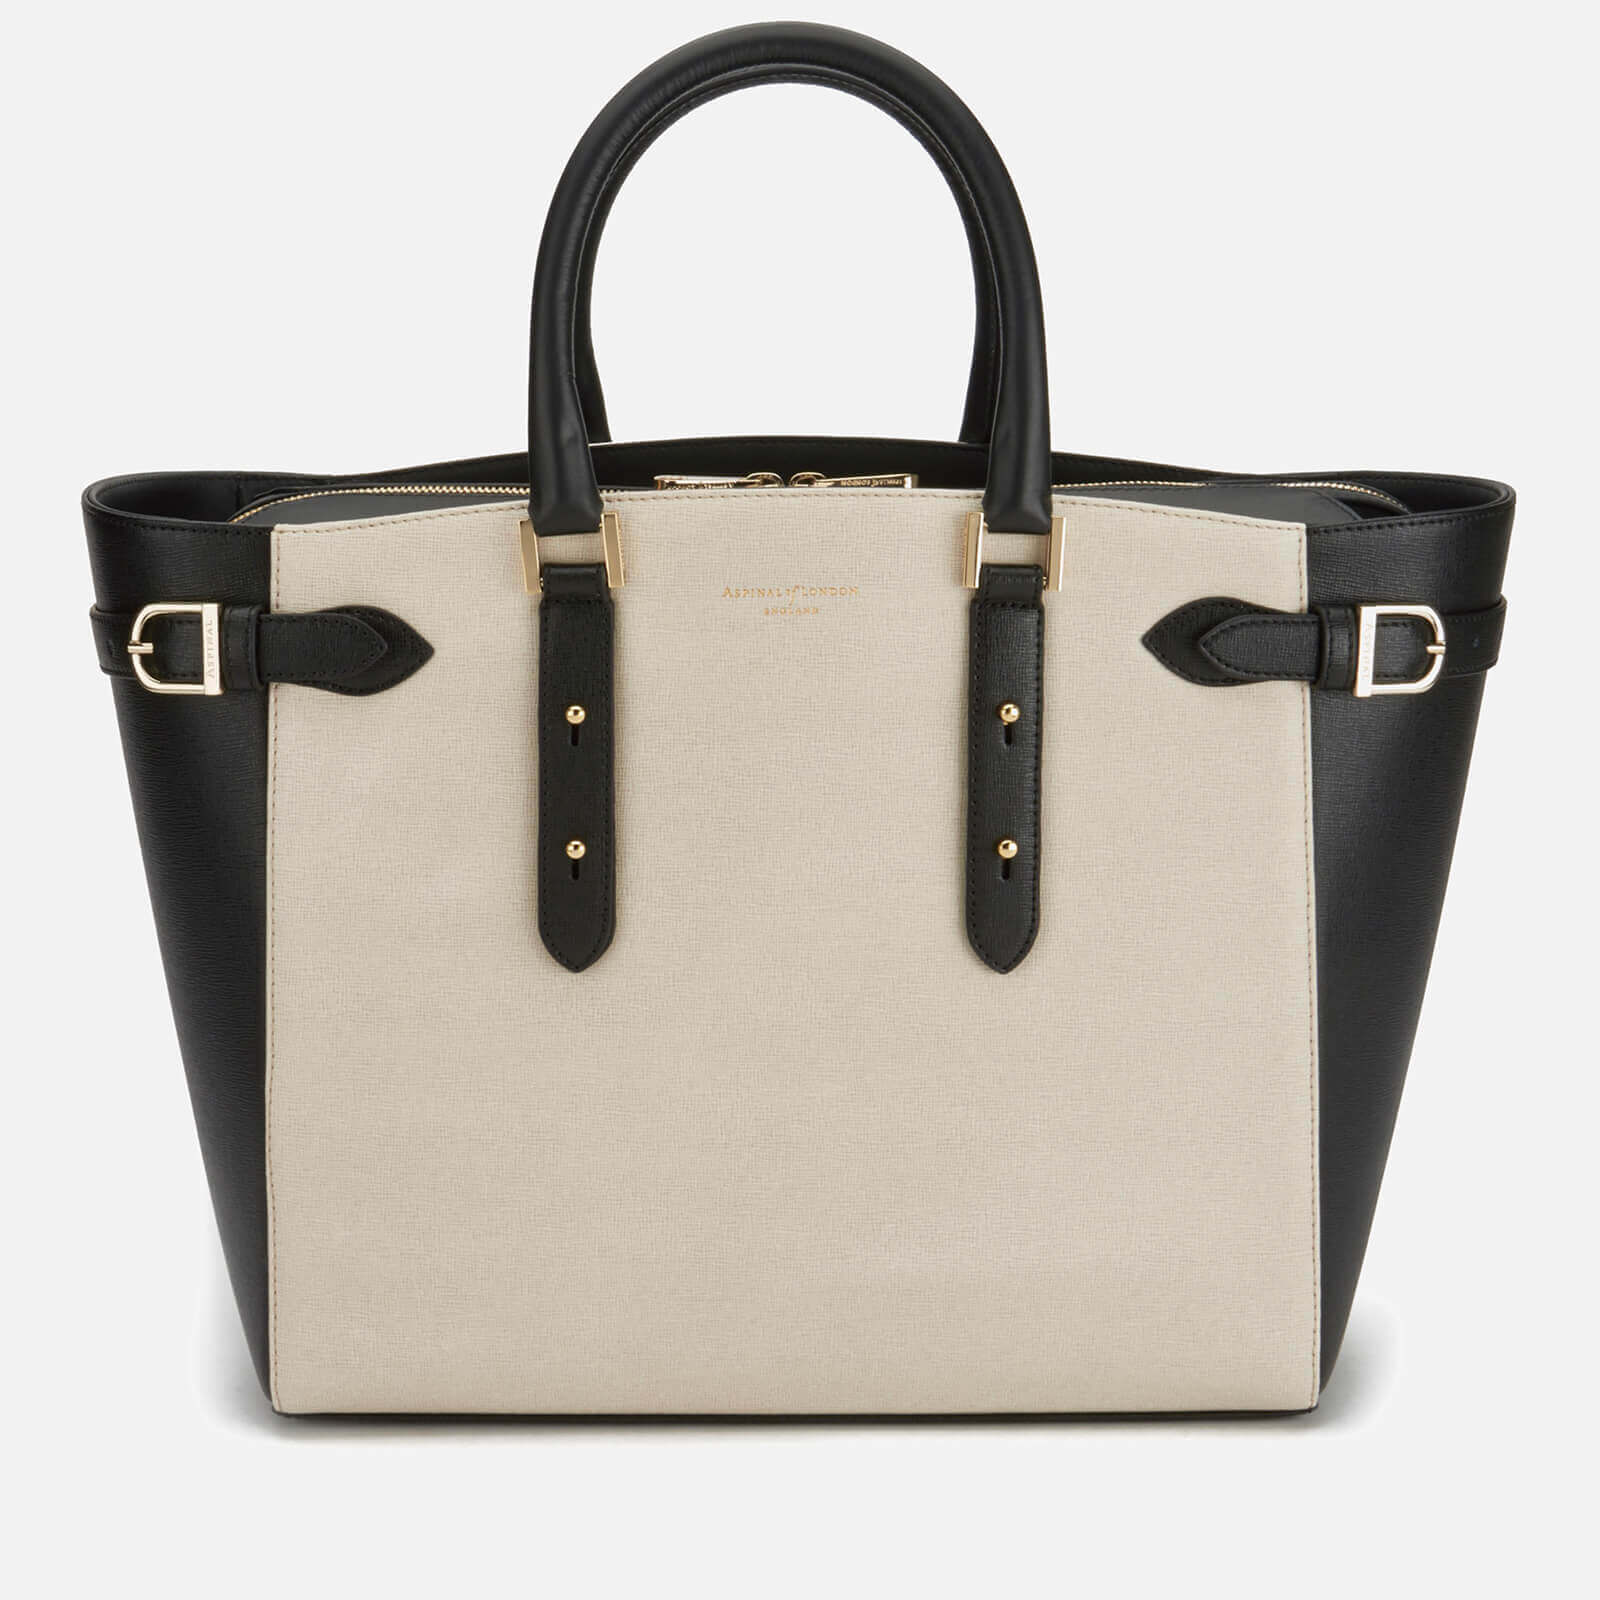 6b748ee558995 Aspinal of London Women s Marylebone Tote Bag - Monochrome - Free UK  Delivery over £50